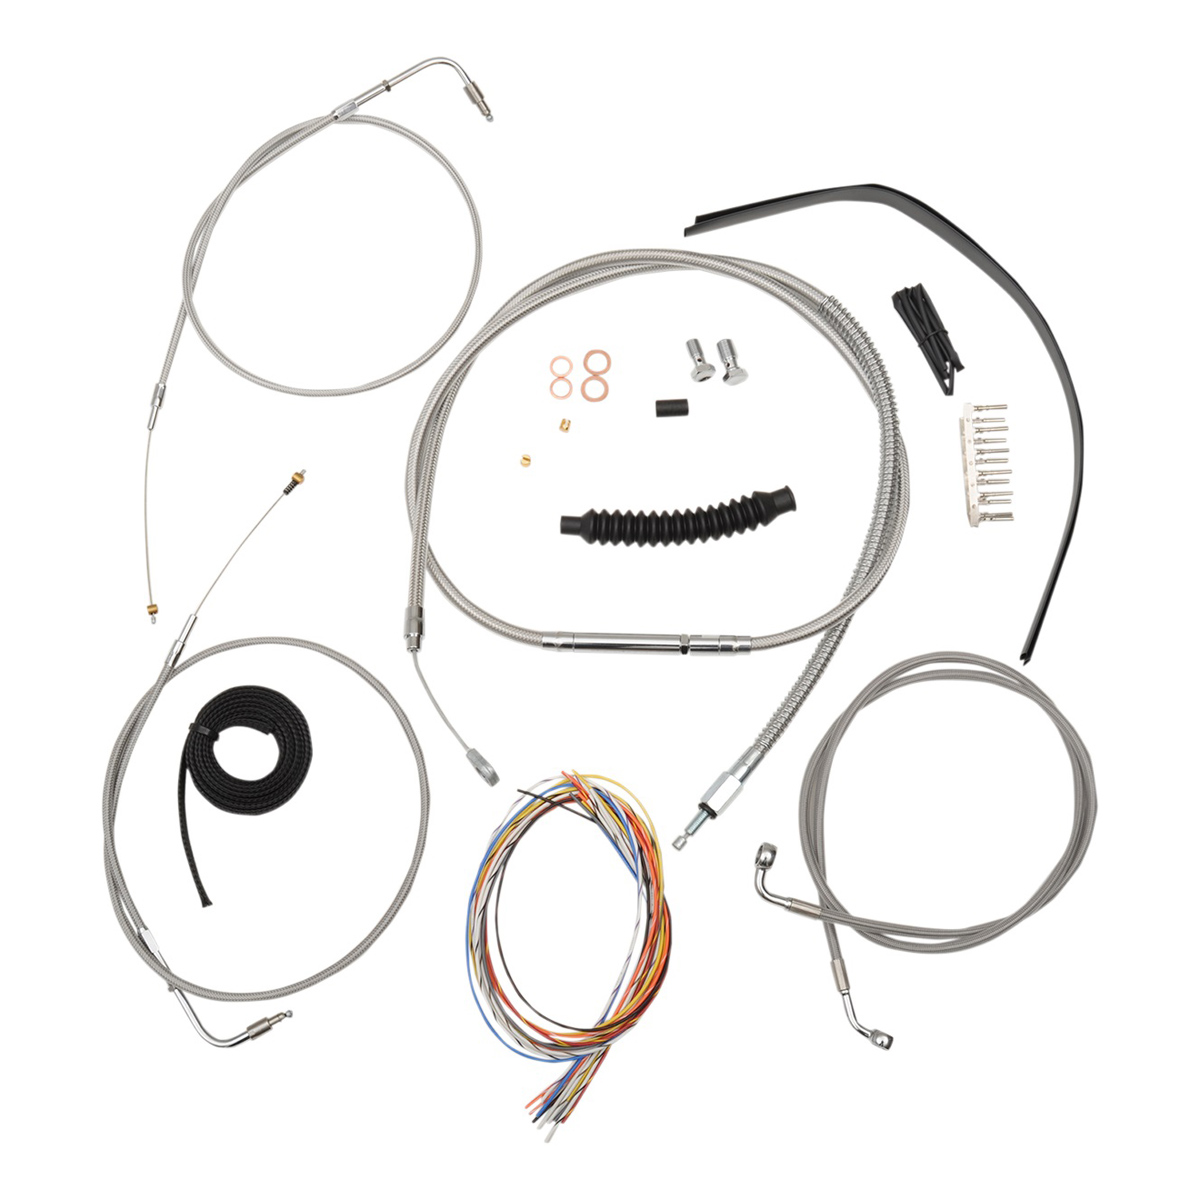 LA Choppers Stainless Complete Cable/Line/Wiring Handlebar Kit for 15″-17″ Bars